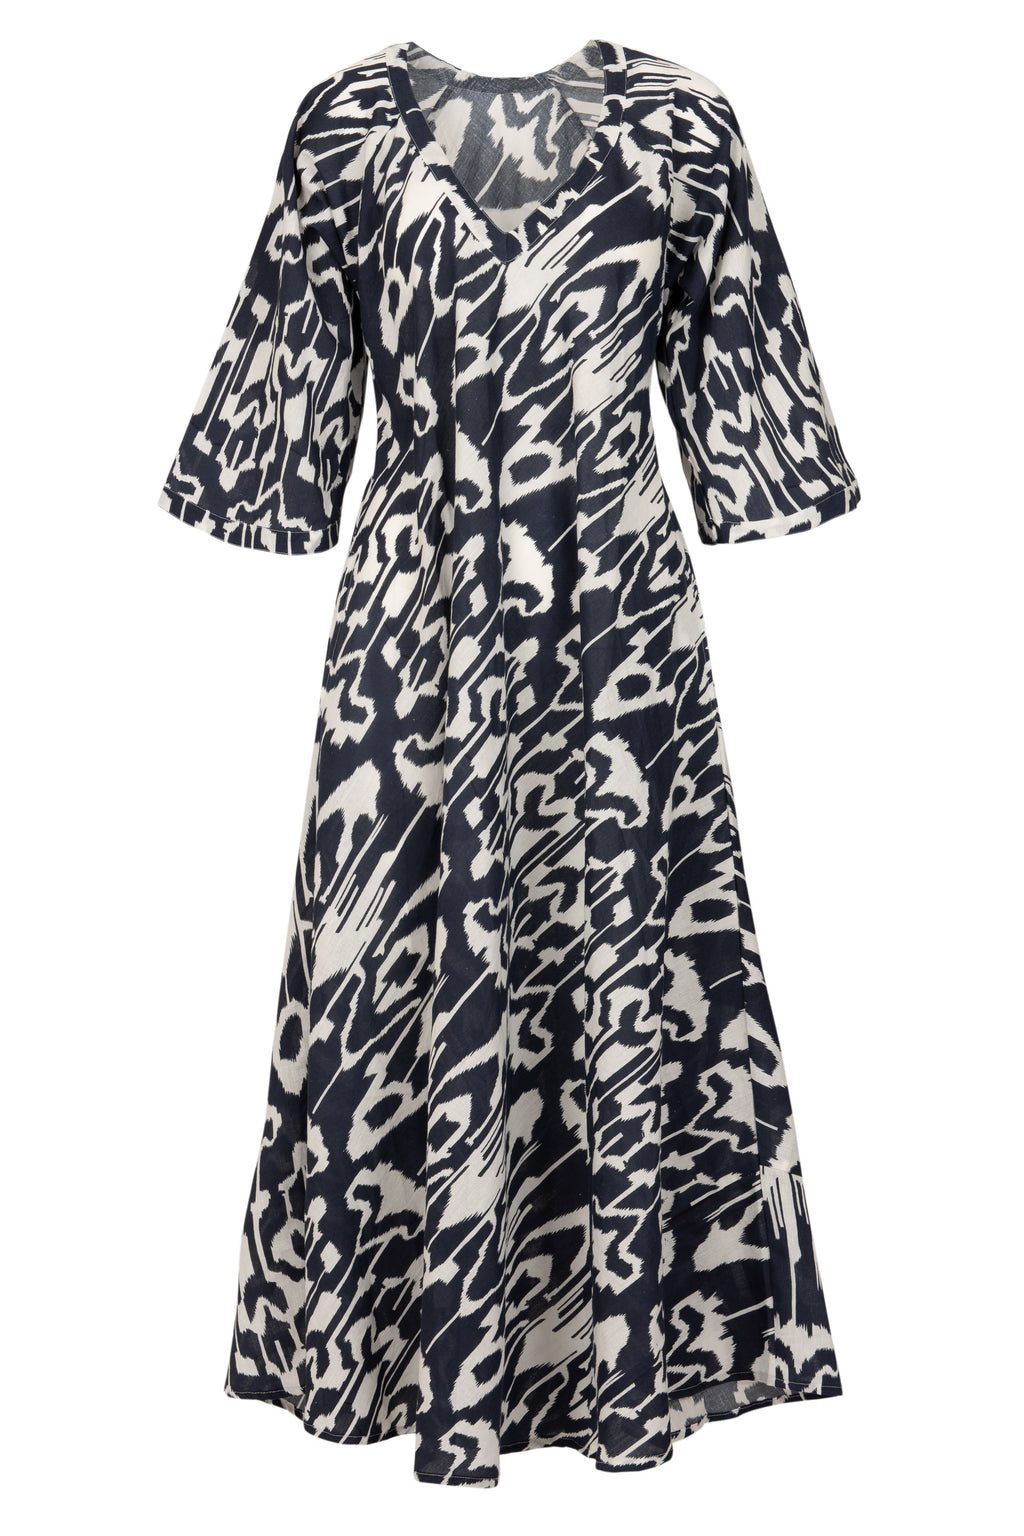 Anna Cotton Dress- Navy and White